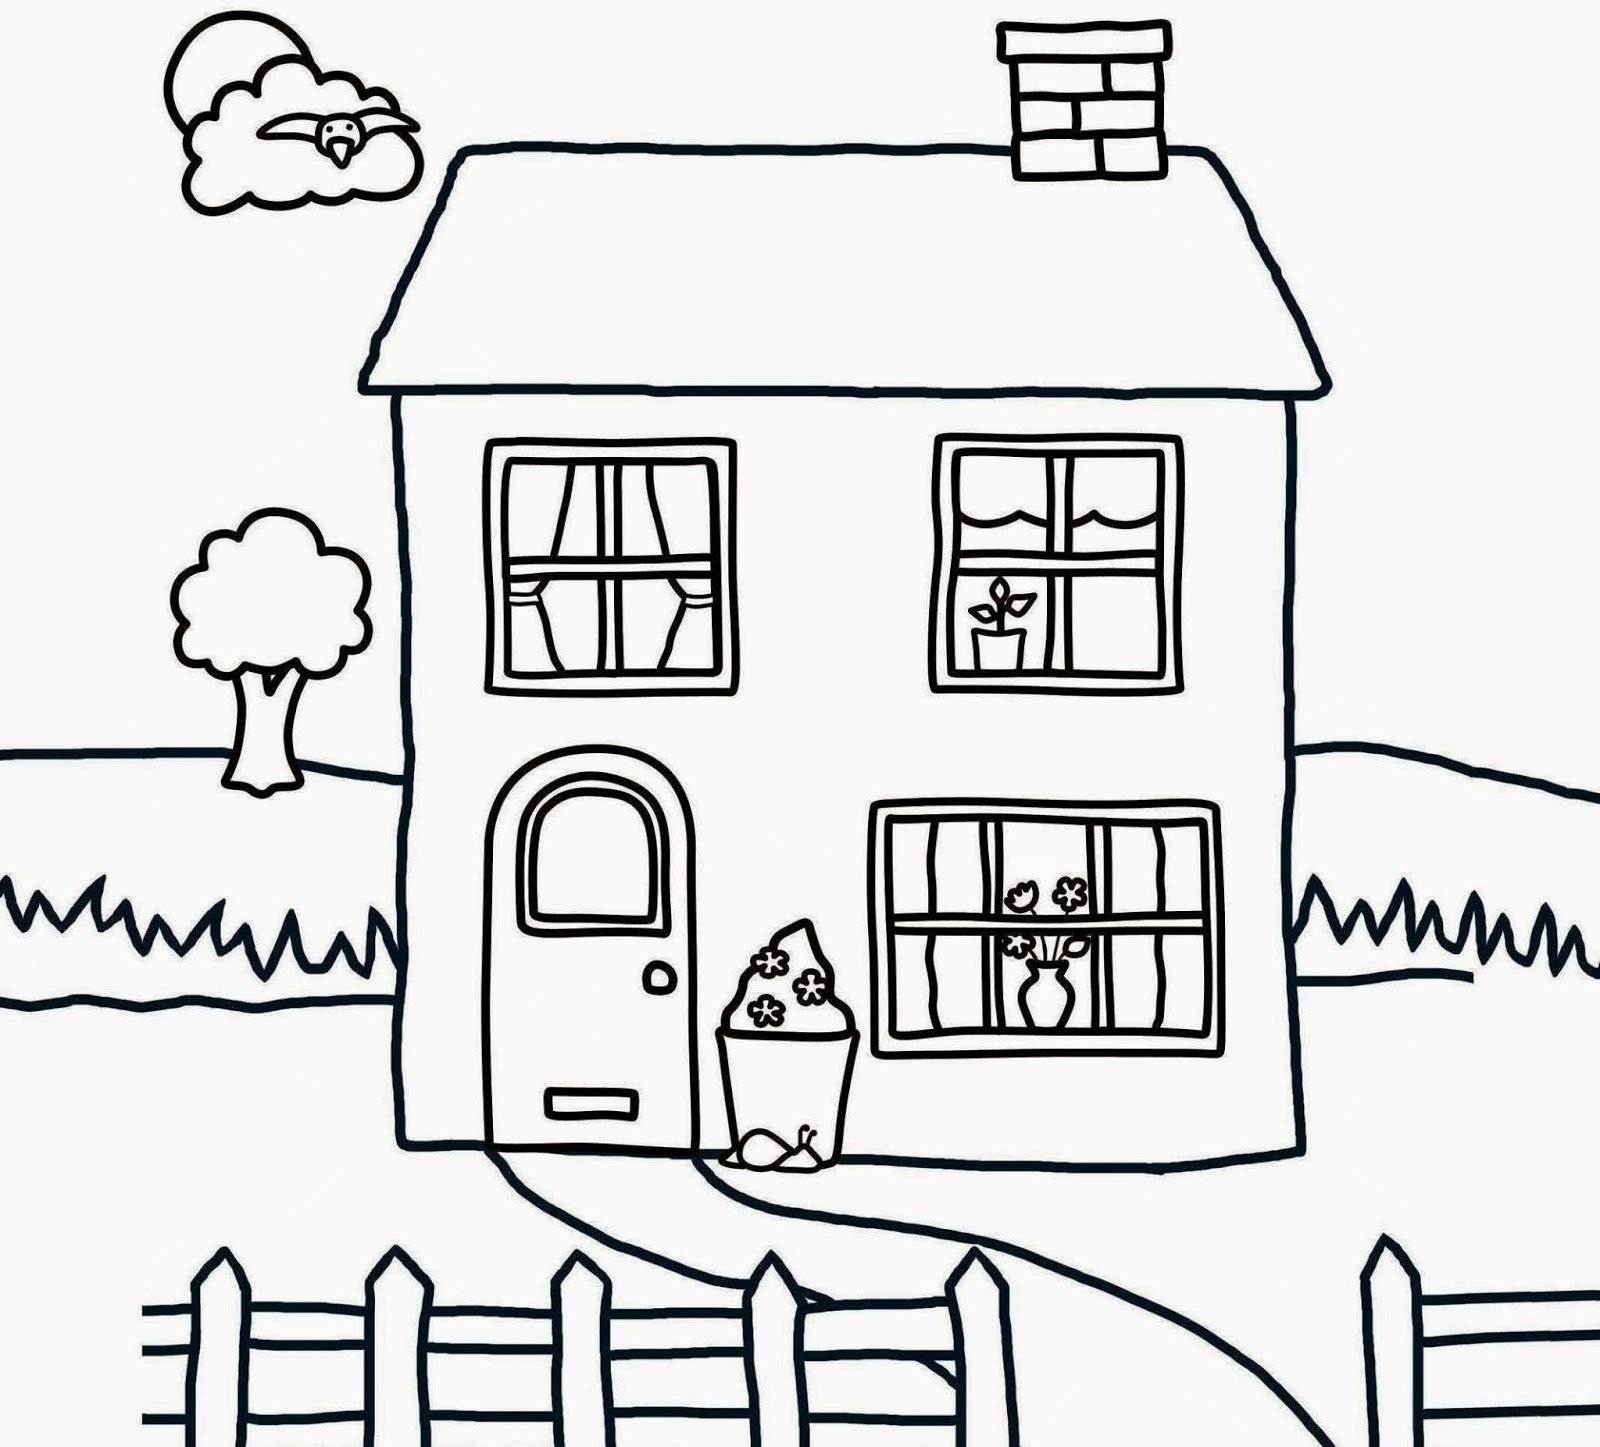 house pictures drawing at getdrawings com